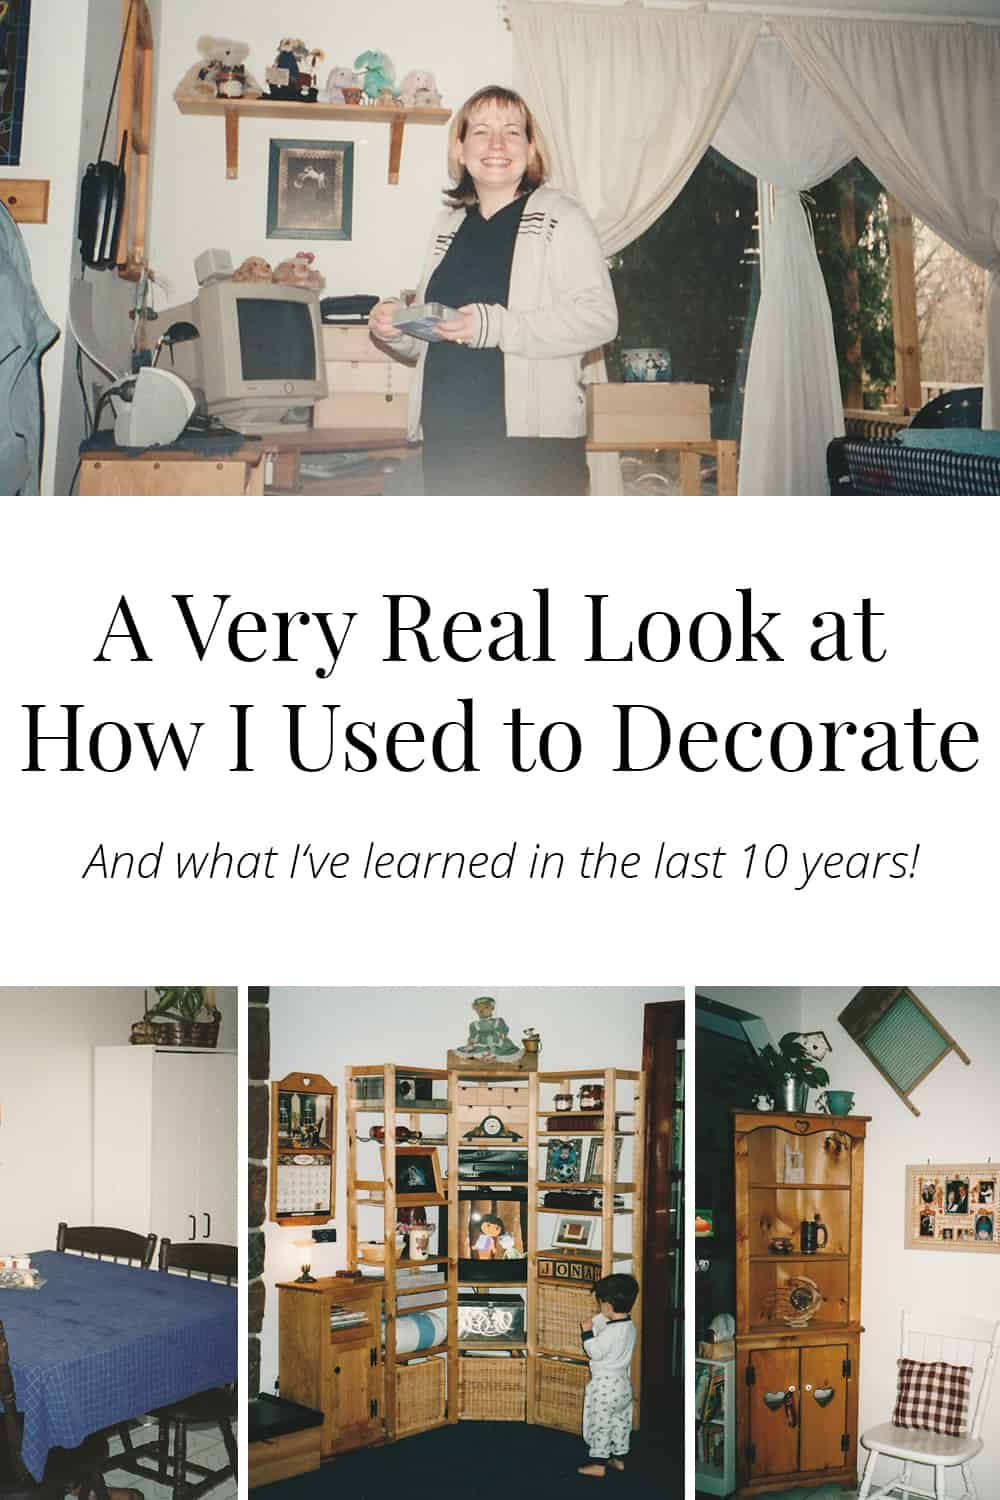 How I used to decorate